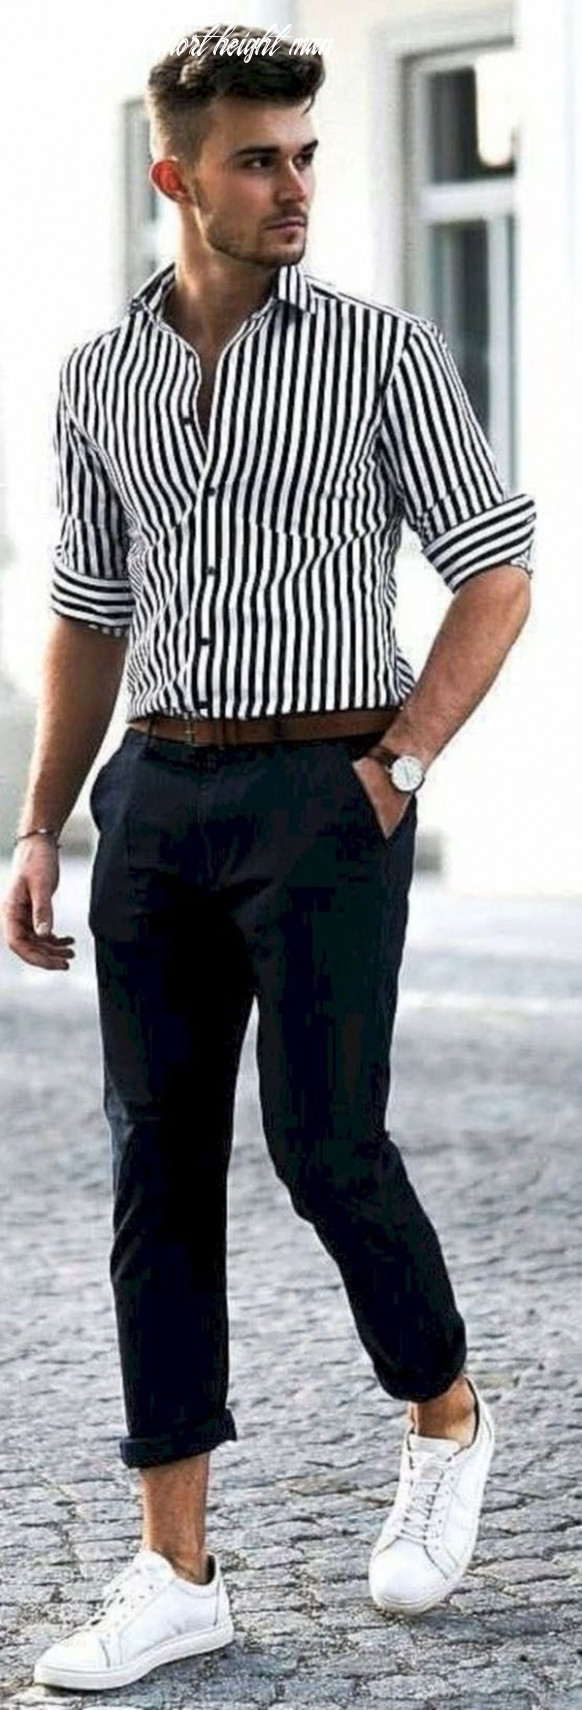 11 practical fashion tips for short height men machovibes hairstyle for short height man